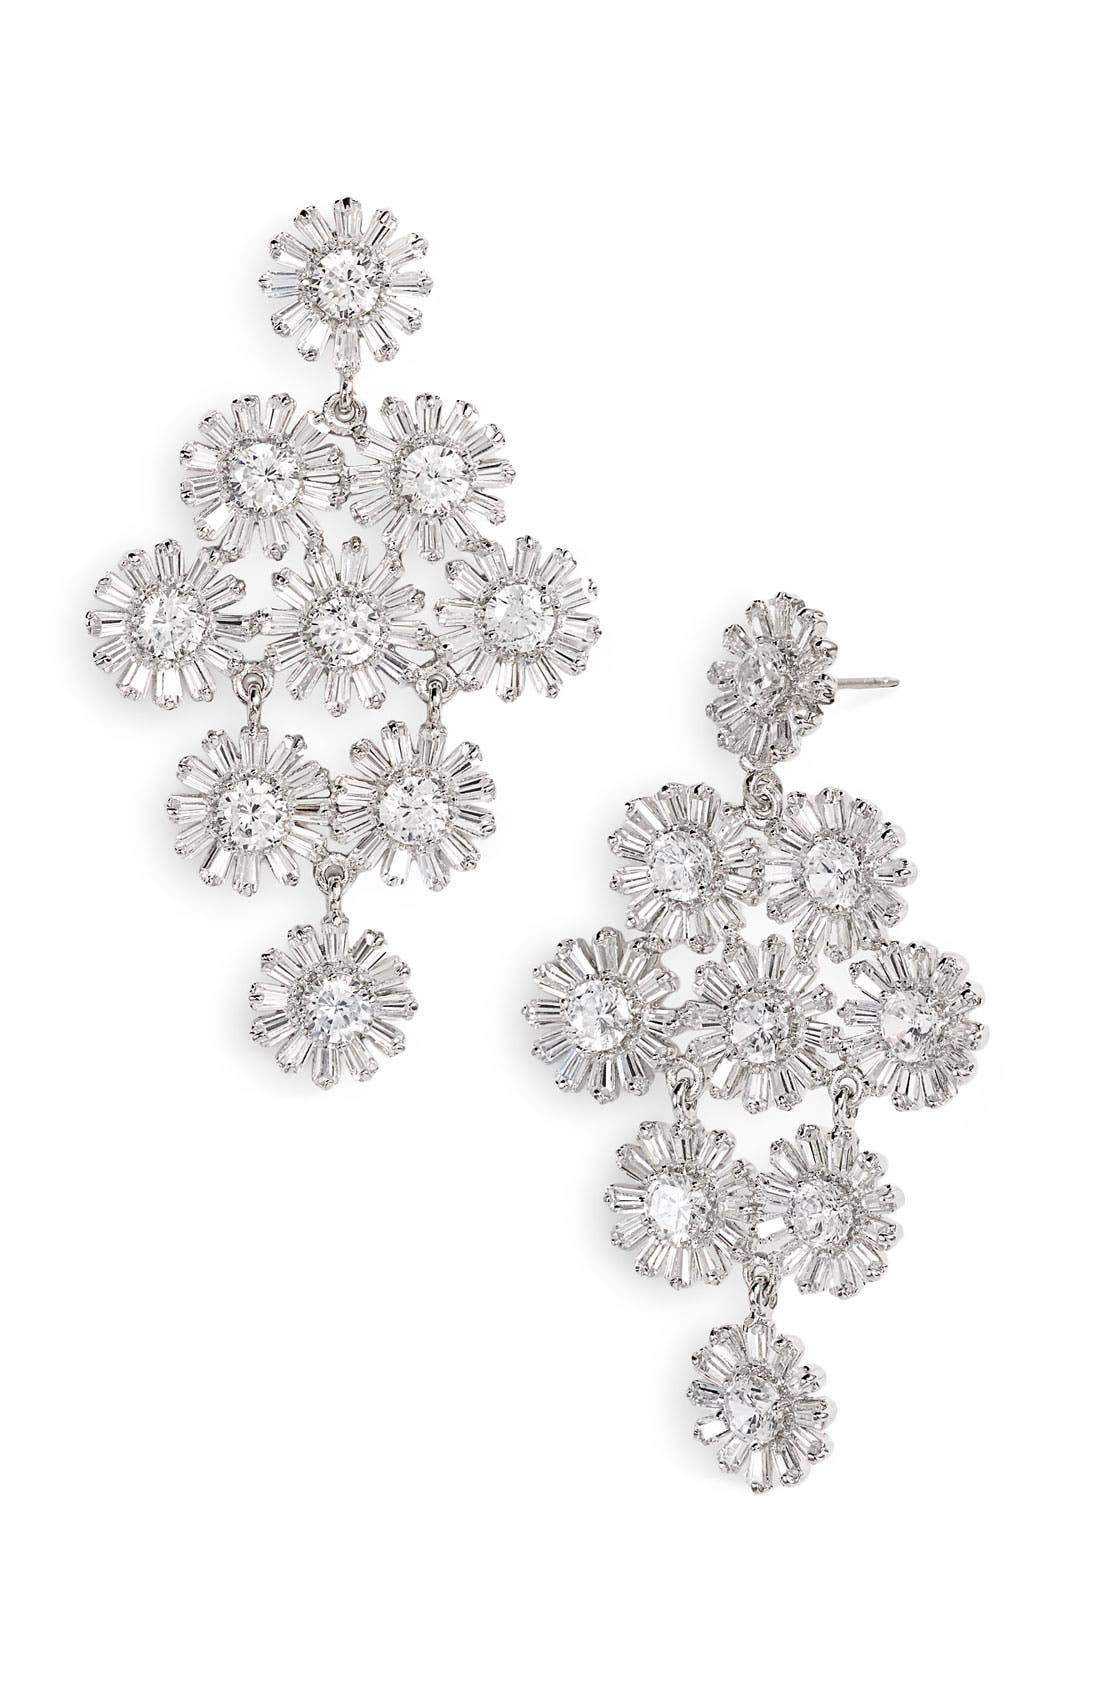 Alternate Image 1 Selected - kate spade new york 'crystal gardens' chandelier earrings